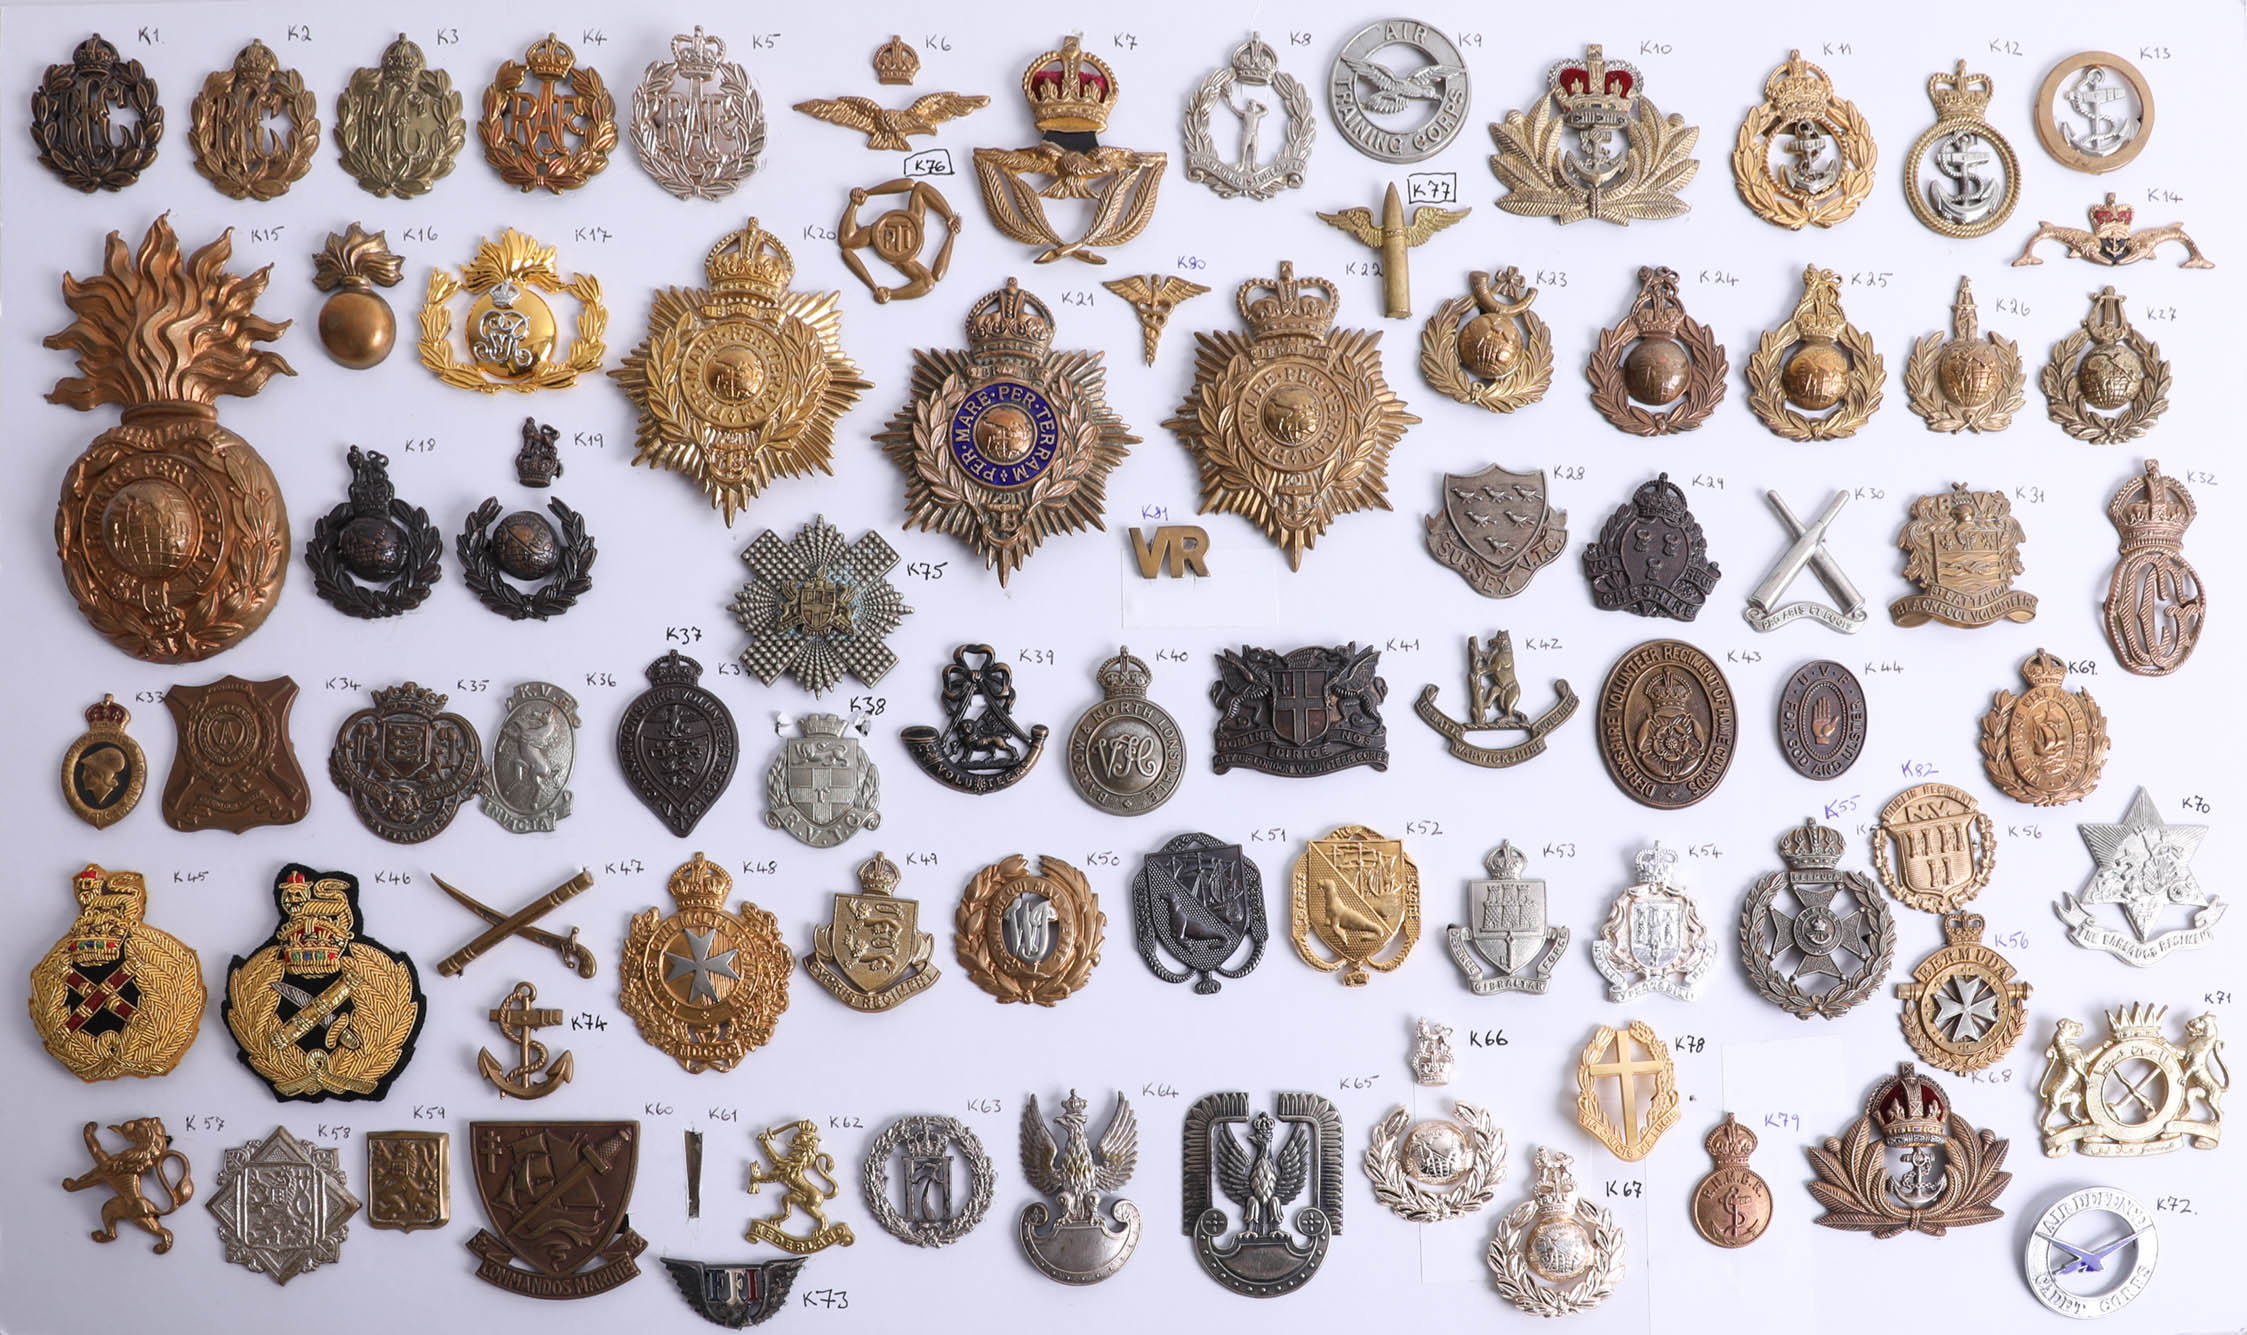 Lot 011 - A collection of approx. 82 military cap and other badges including Royal Observer Corps, Royal